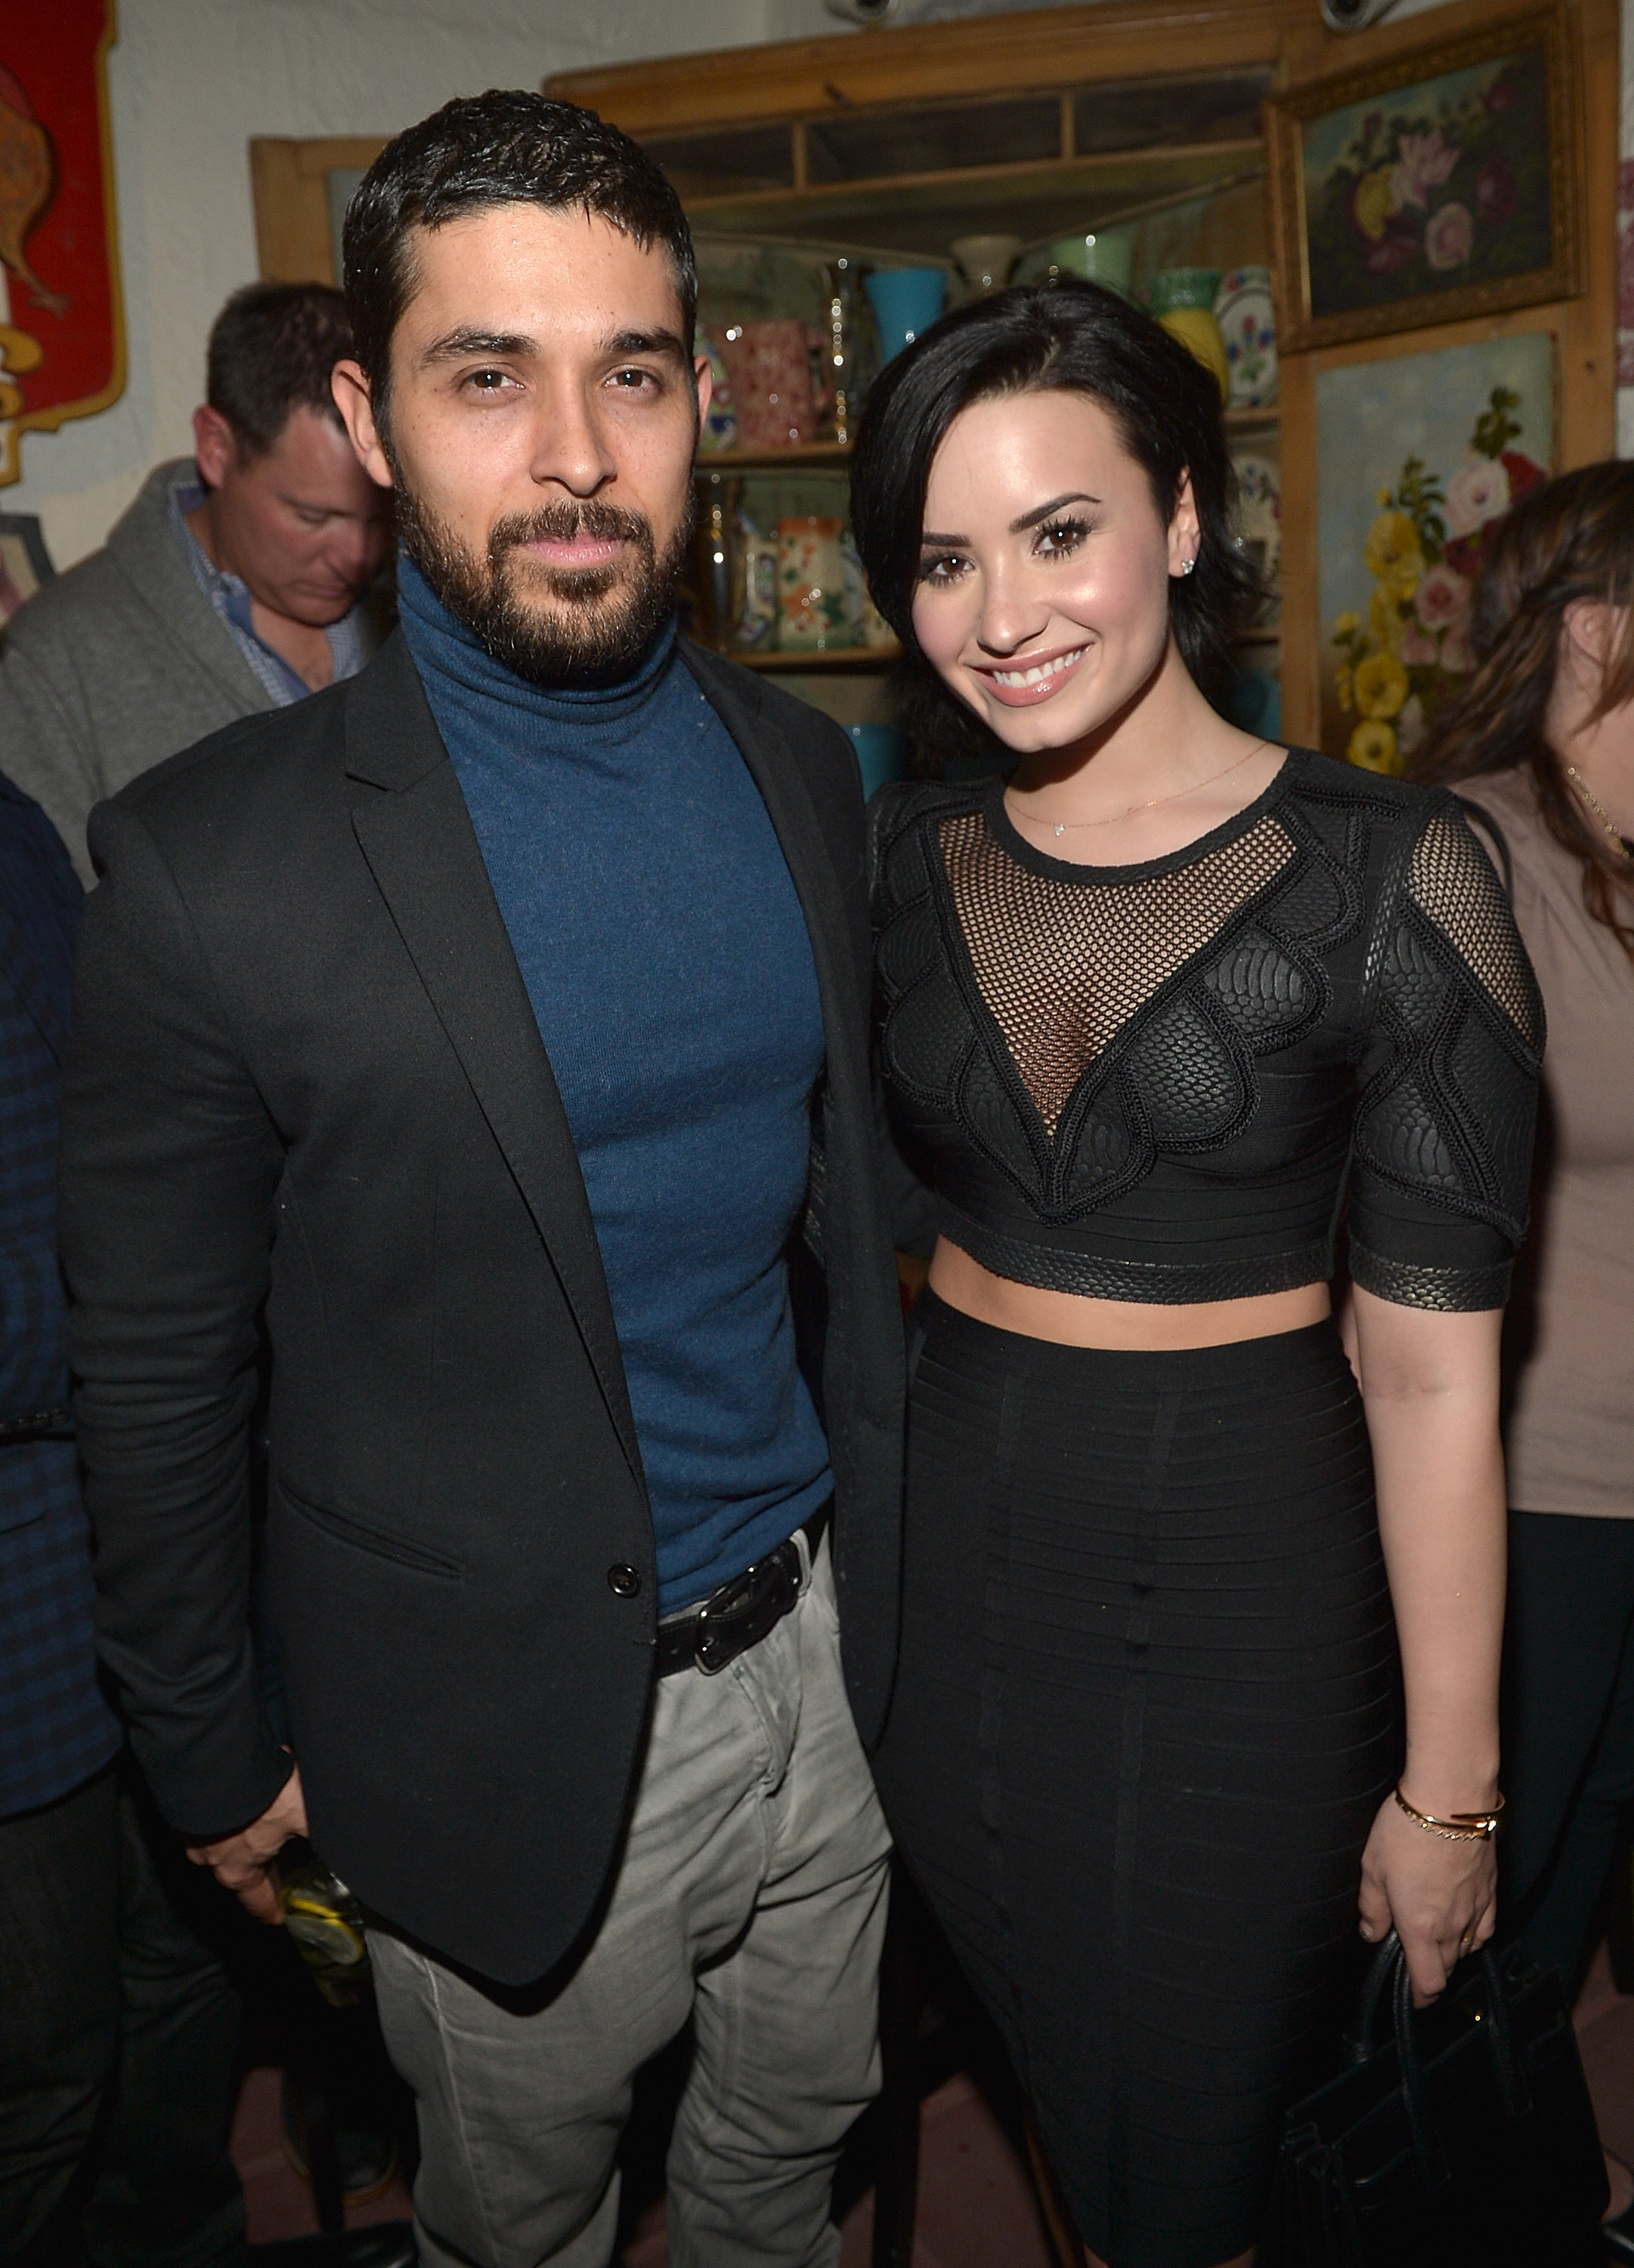 wilmer single guys Mandy moore reveals feelings on ex wilmer mandy moore revealed how she feels about rumours her friend minka kelly is dating her ex wilmer wore men 's pants.